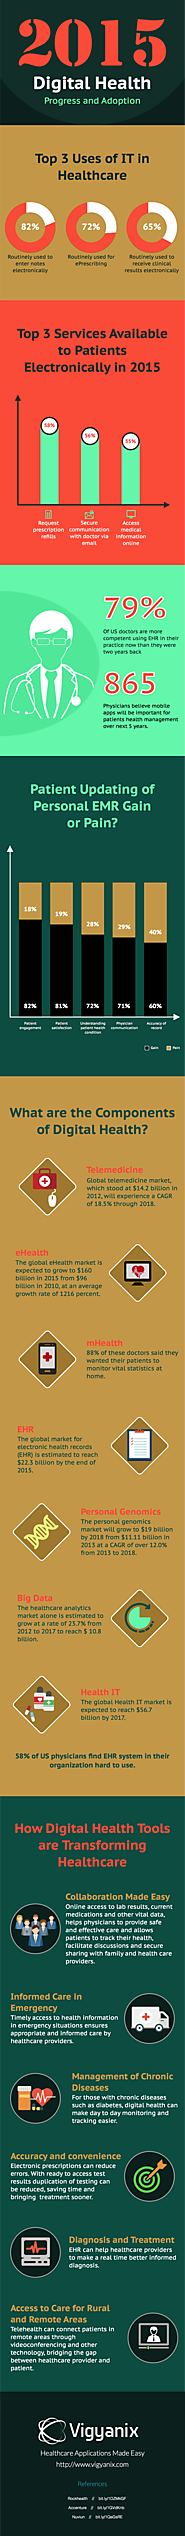 2015 Digital Health Progress and Adoption [infographic]